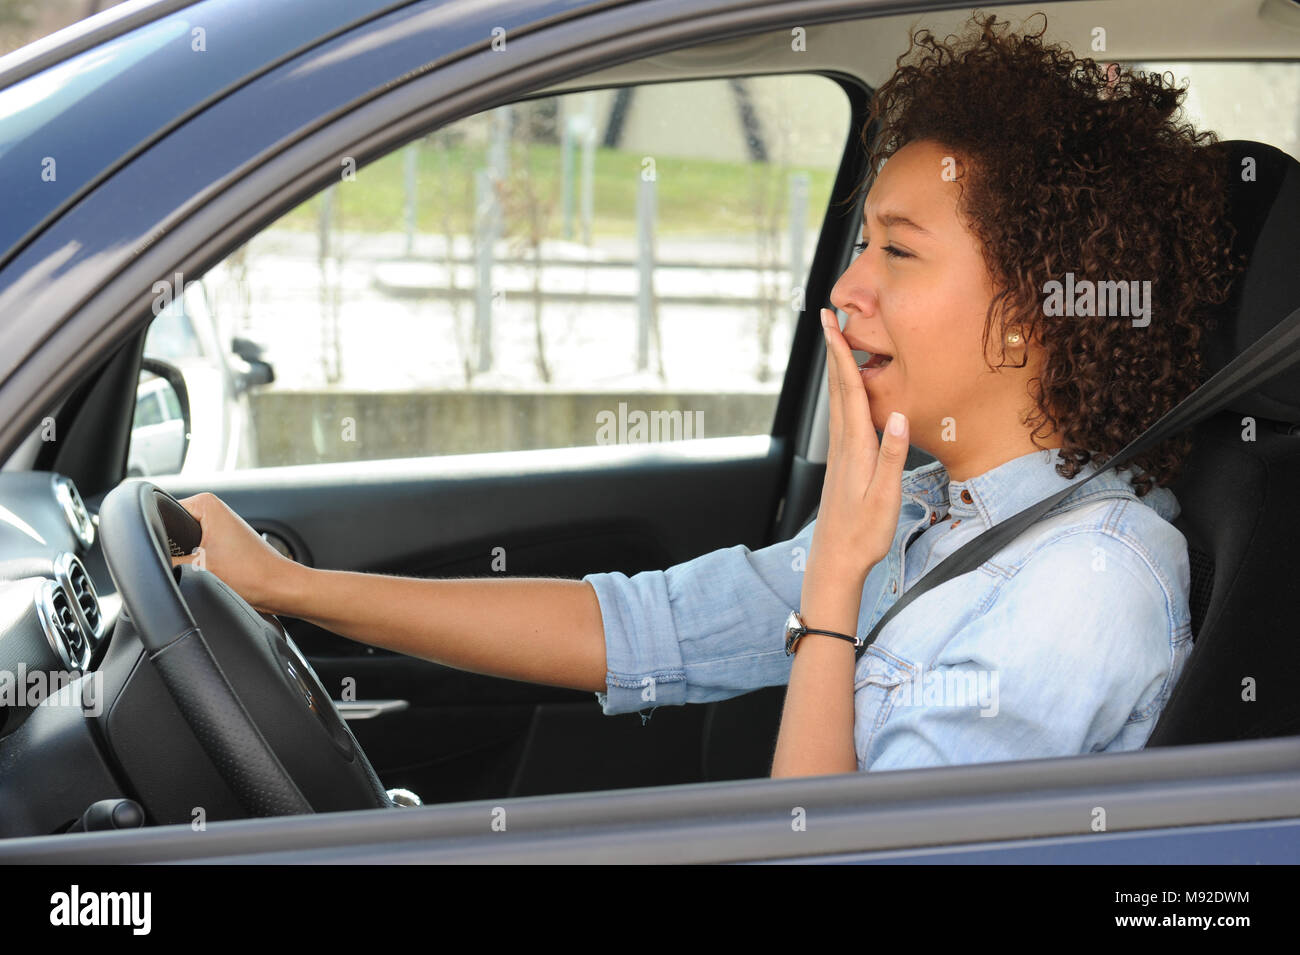 Portrait sleepy tired fatigued exhausted young attractive woman driving her car - Stock Image